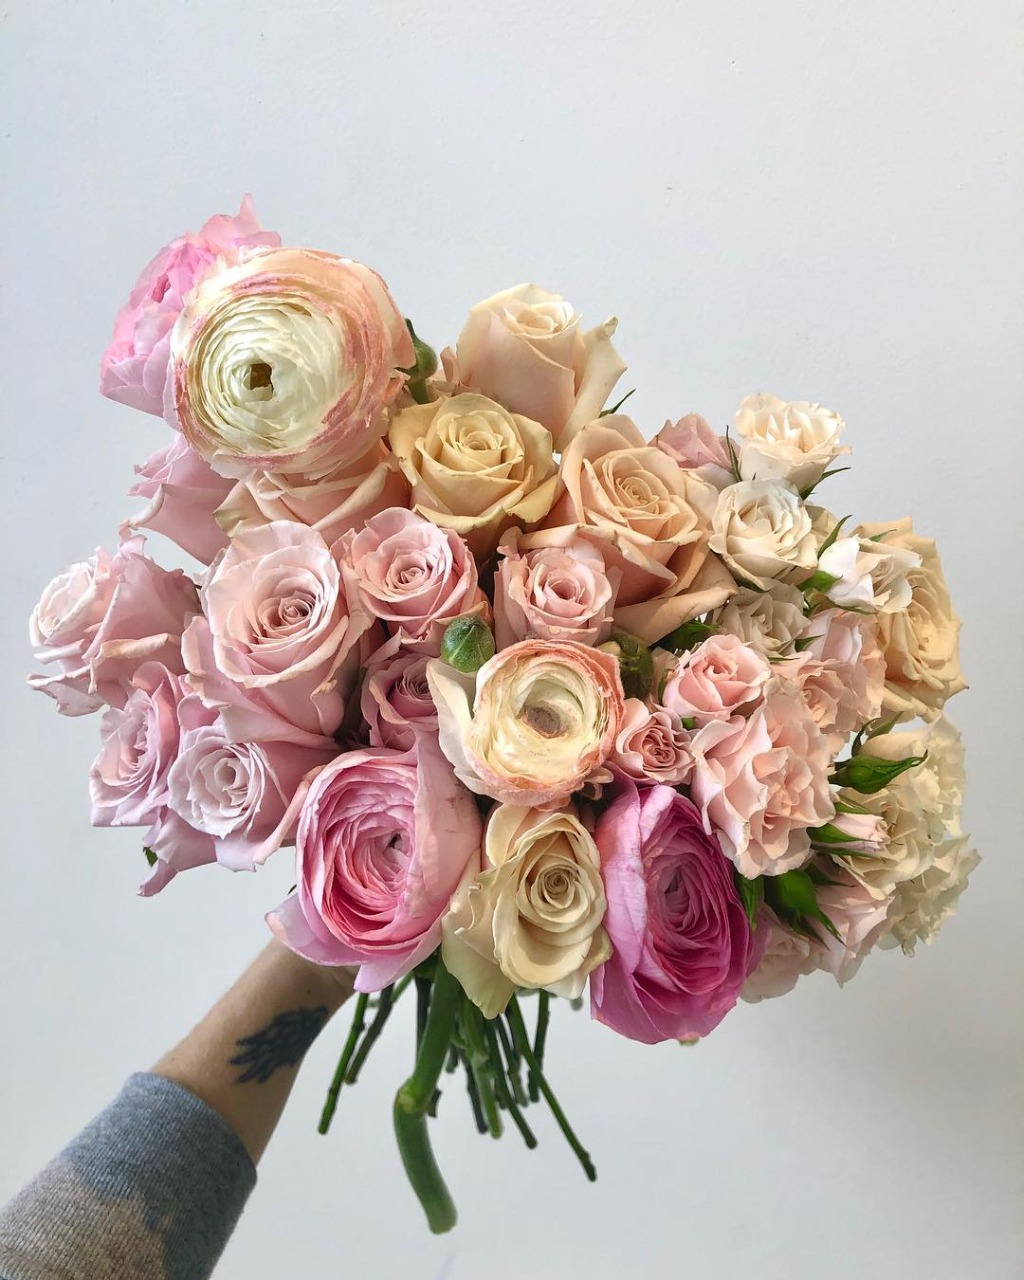 These dusty pink ranunculus have us impatiently waiting for all the 🌸spring🌸 florals to arrive!